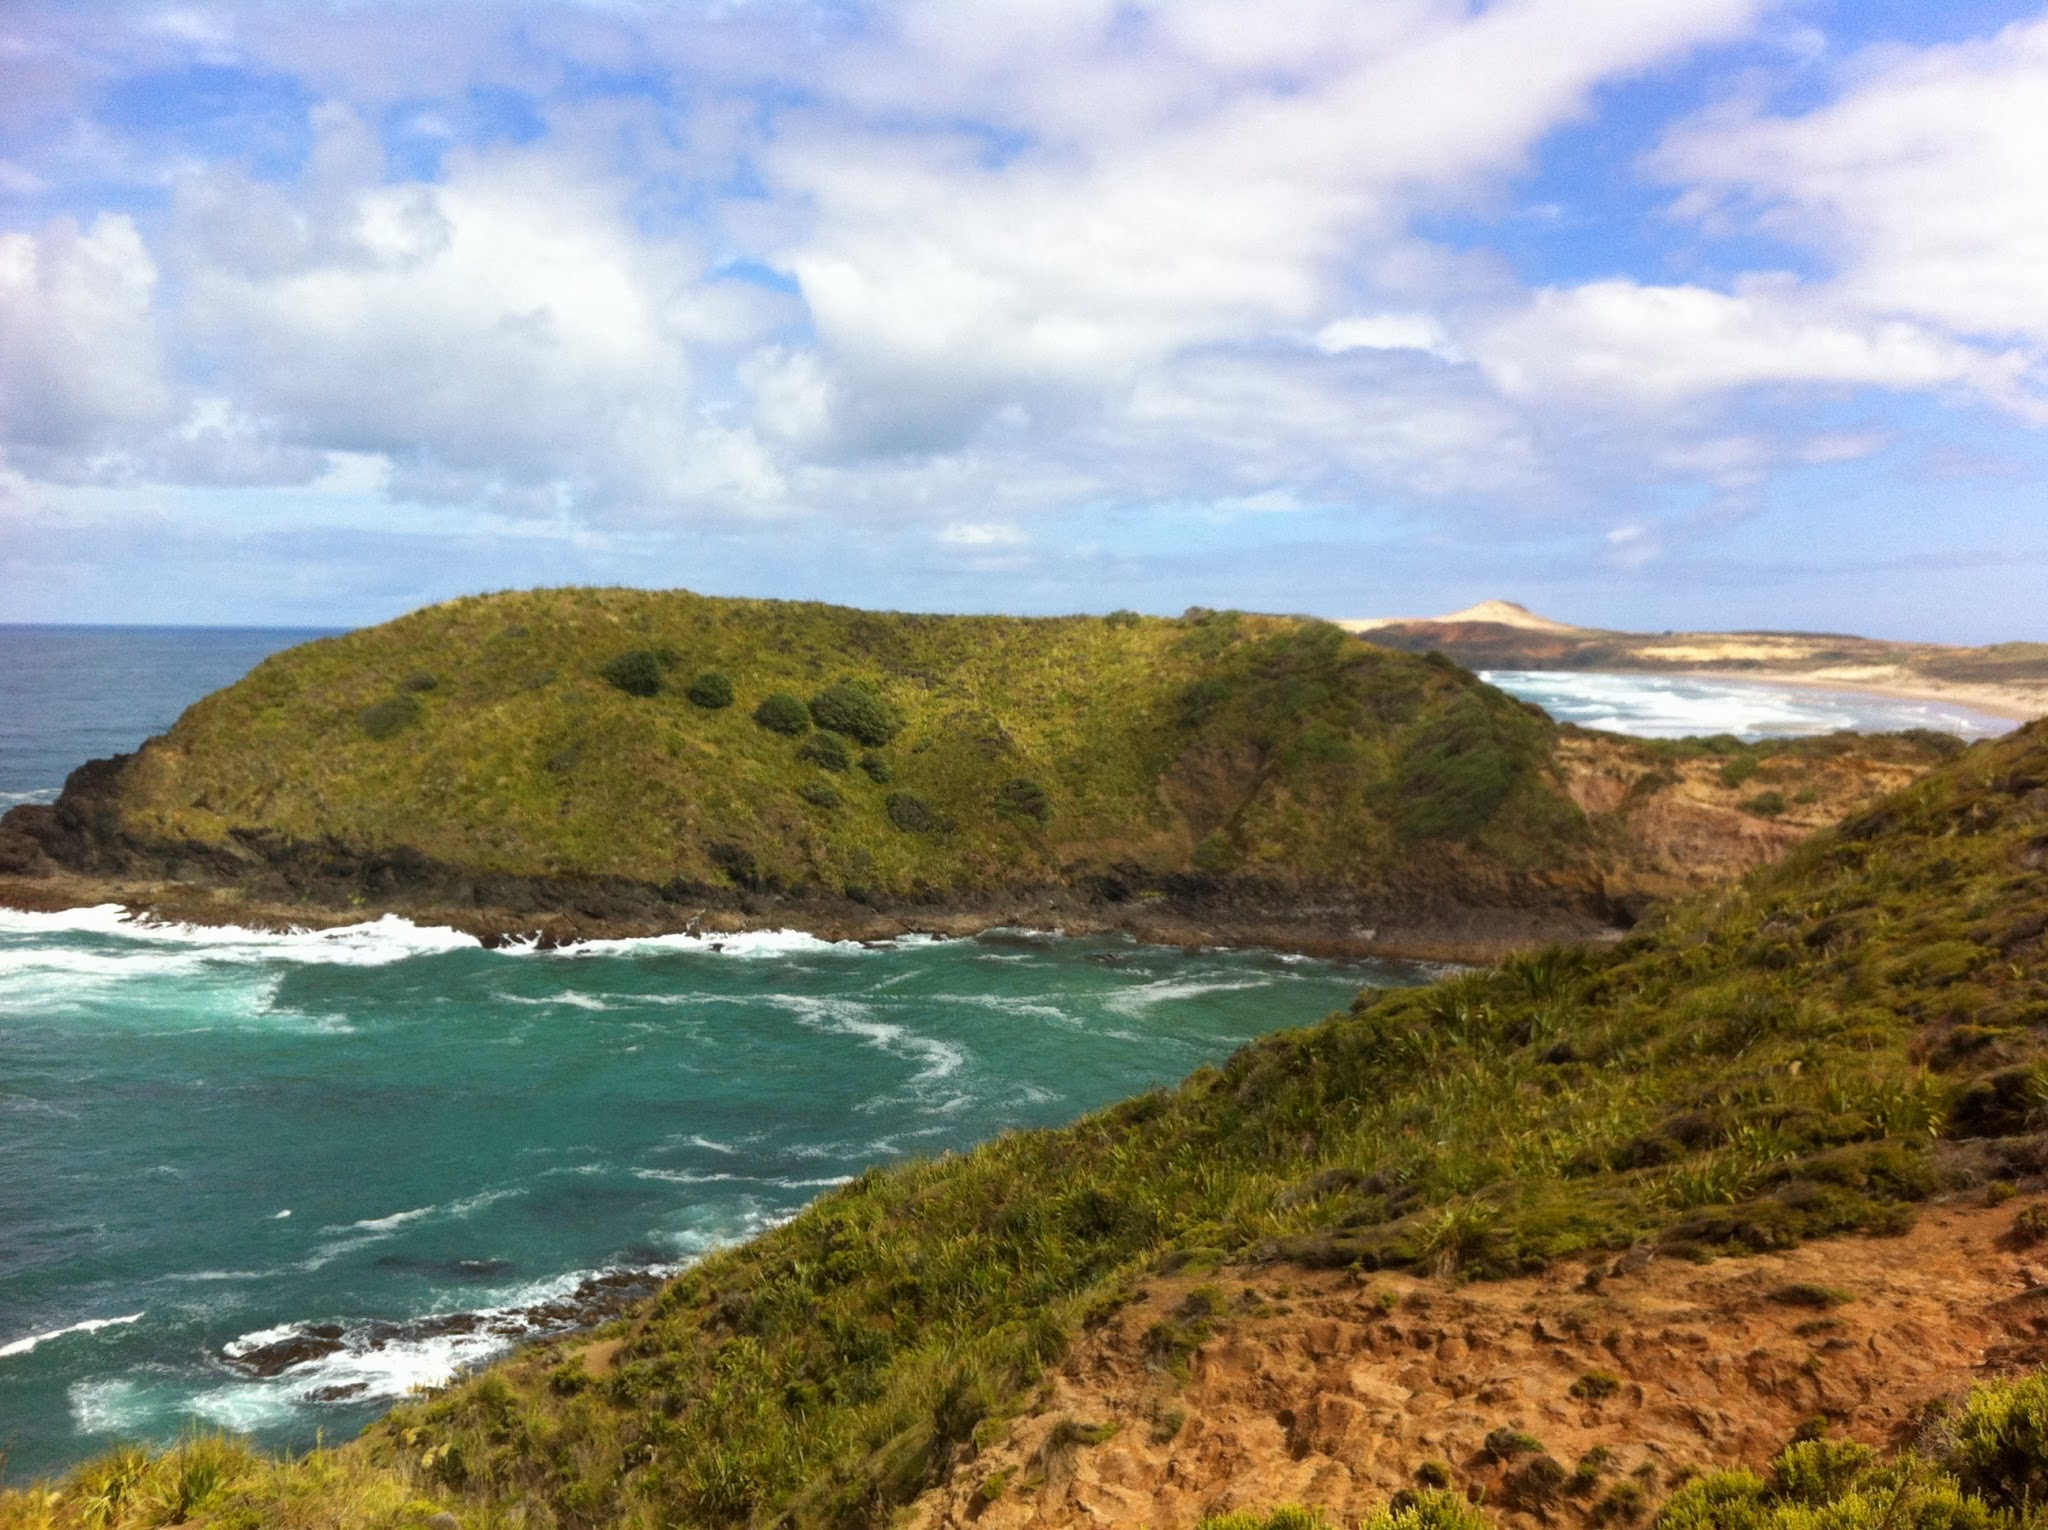 The view North to Twilight Beach and my first campsite on the flank of the prominent sand hill.